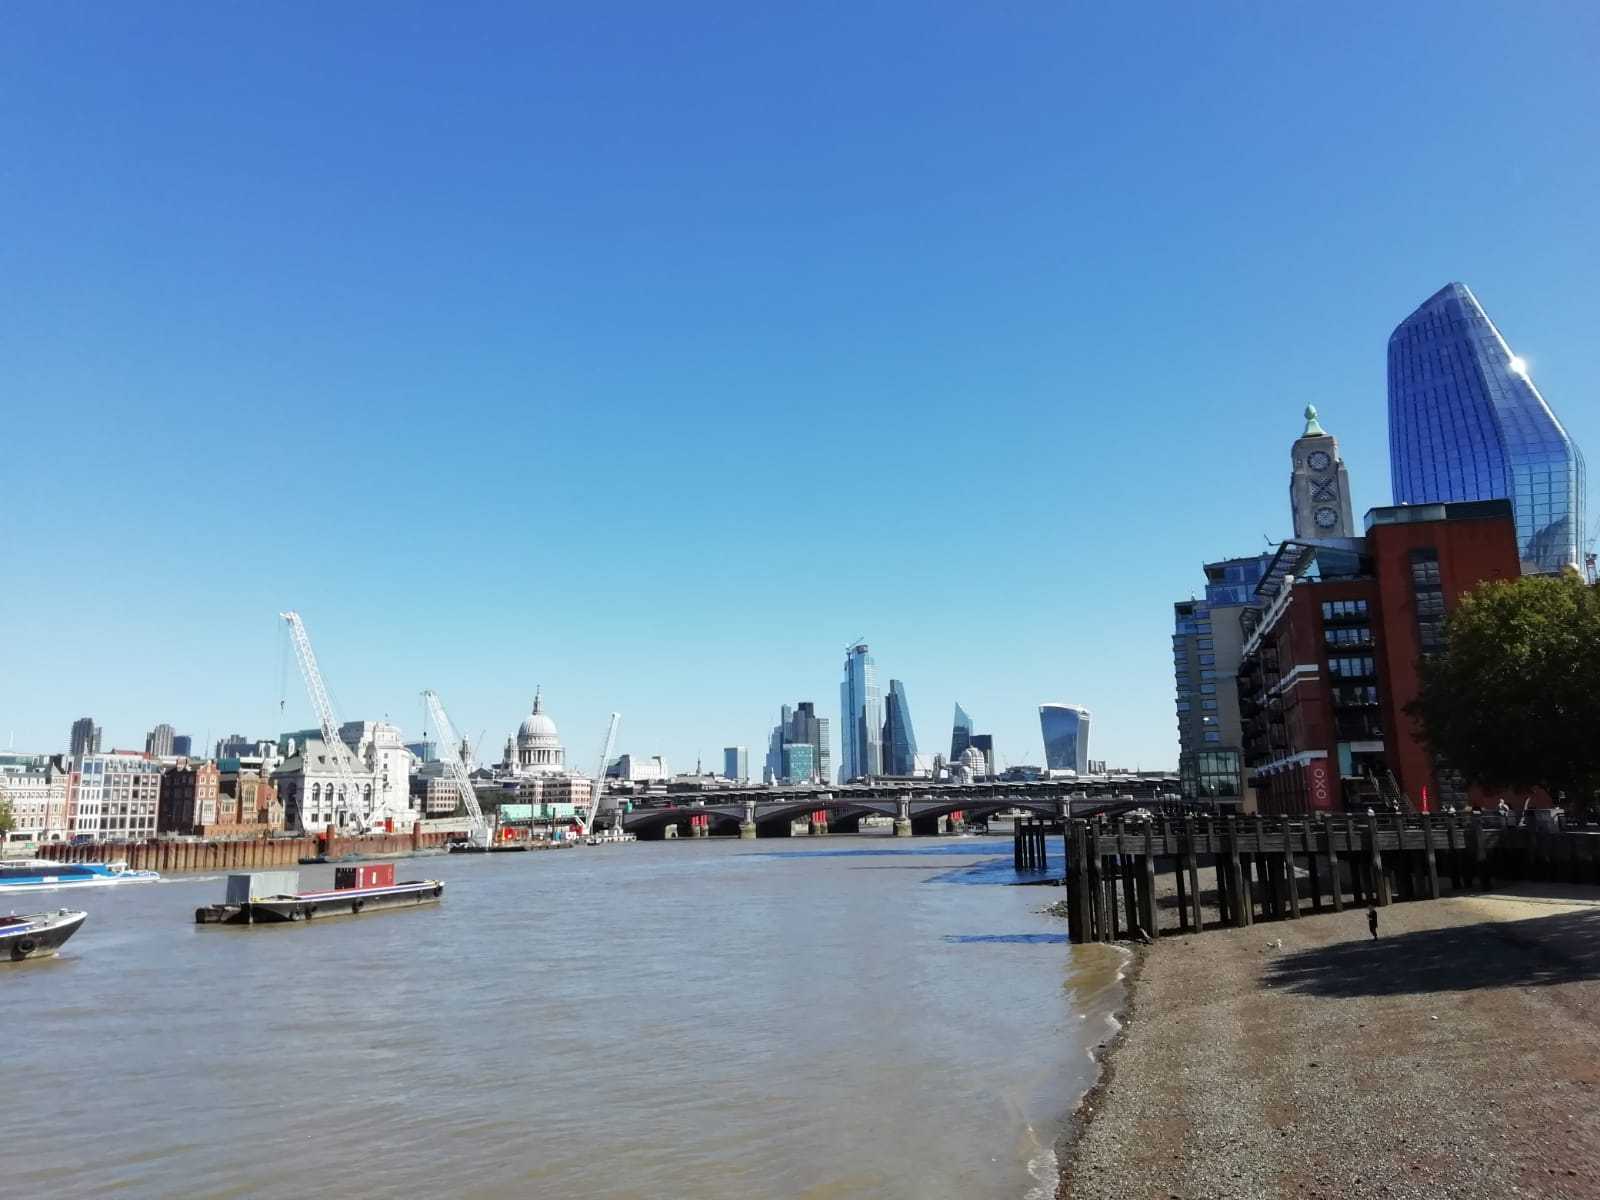 View along the Thames, London